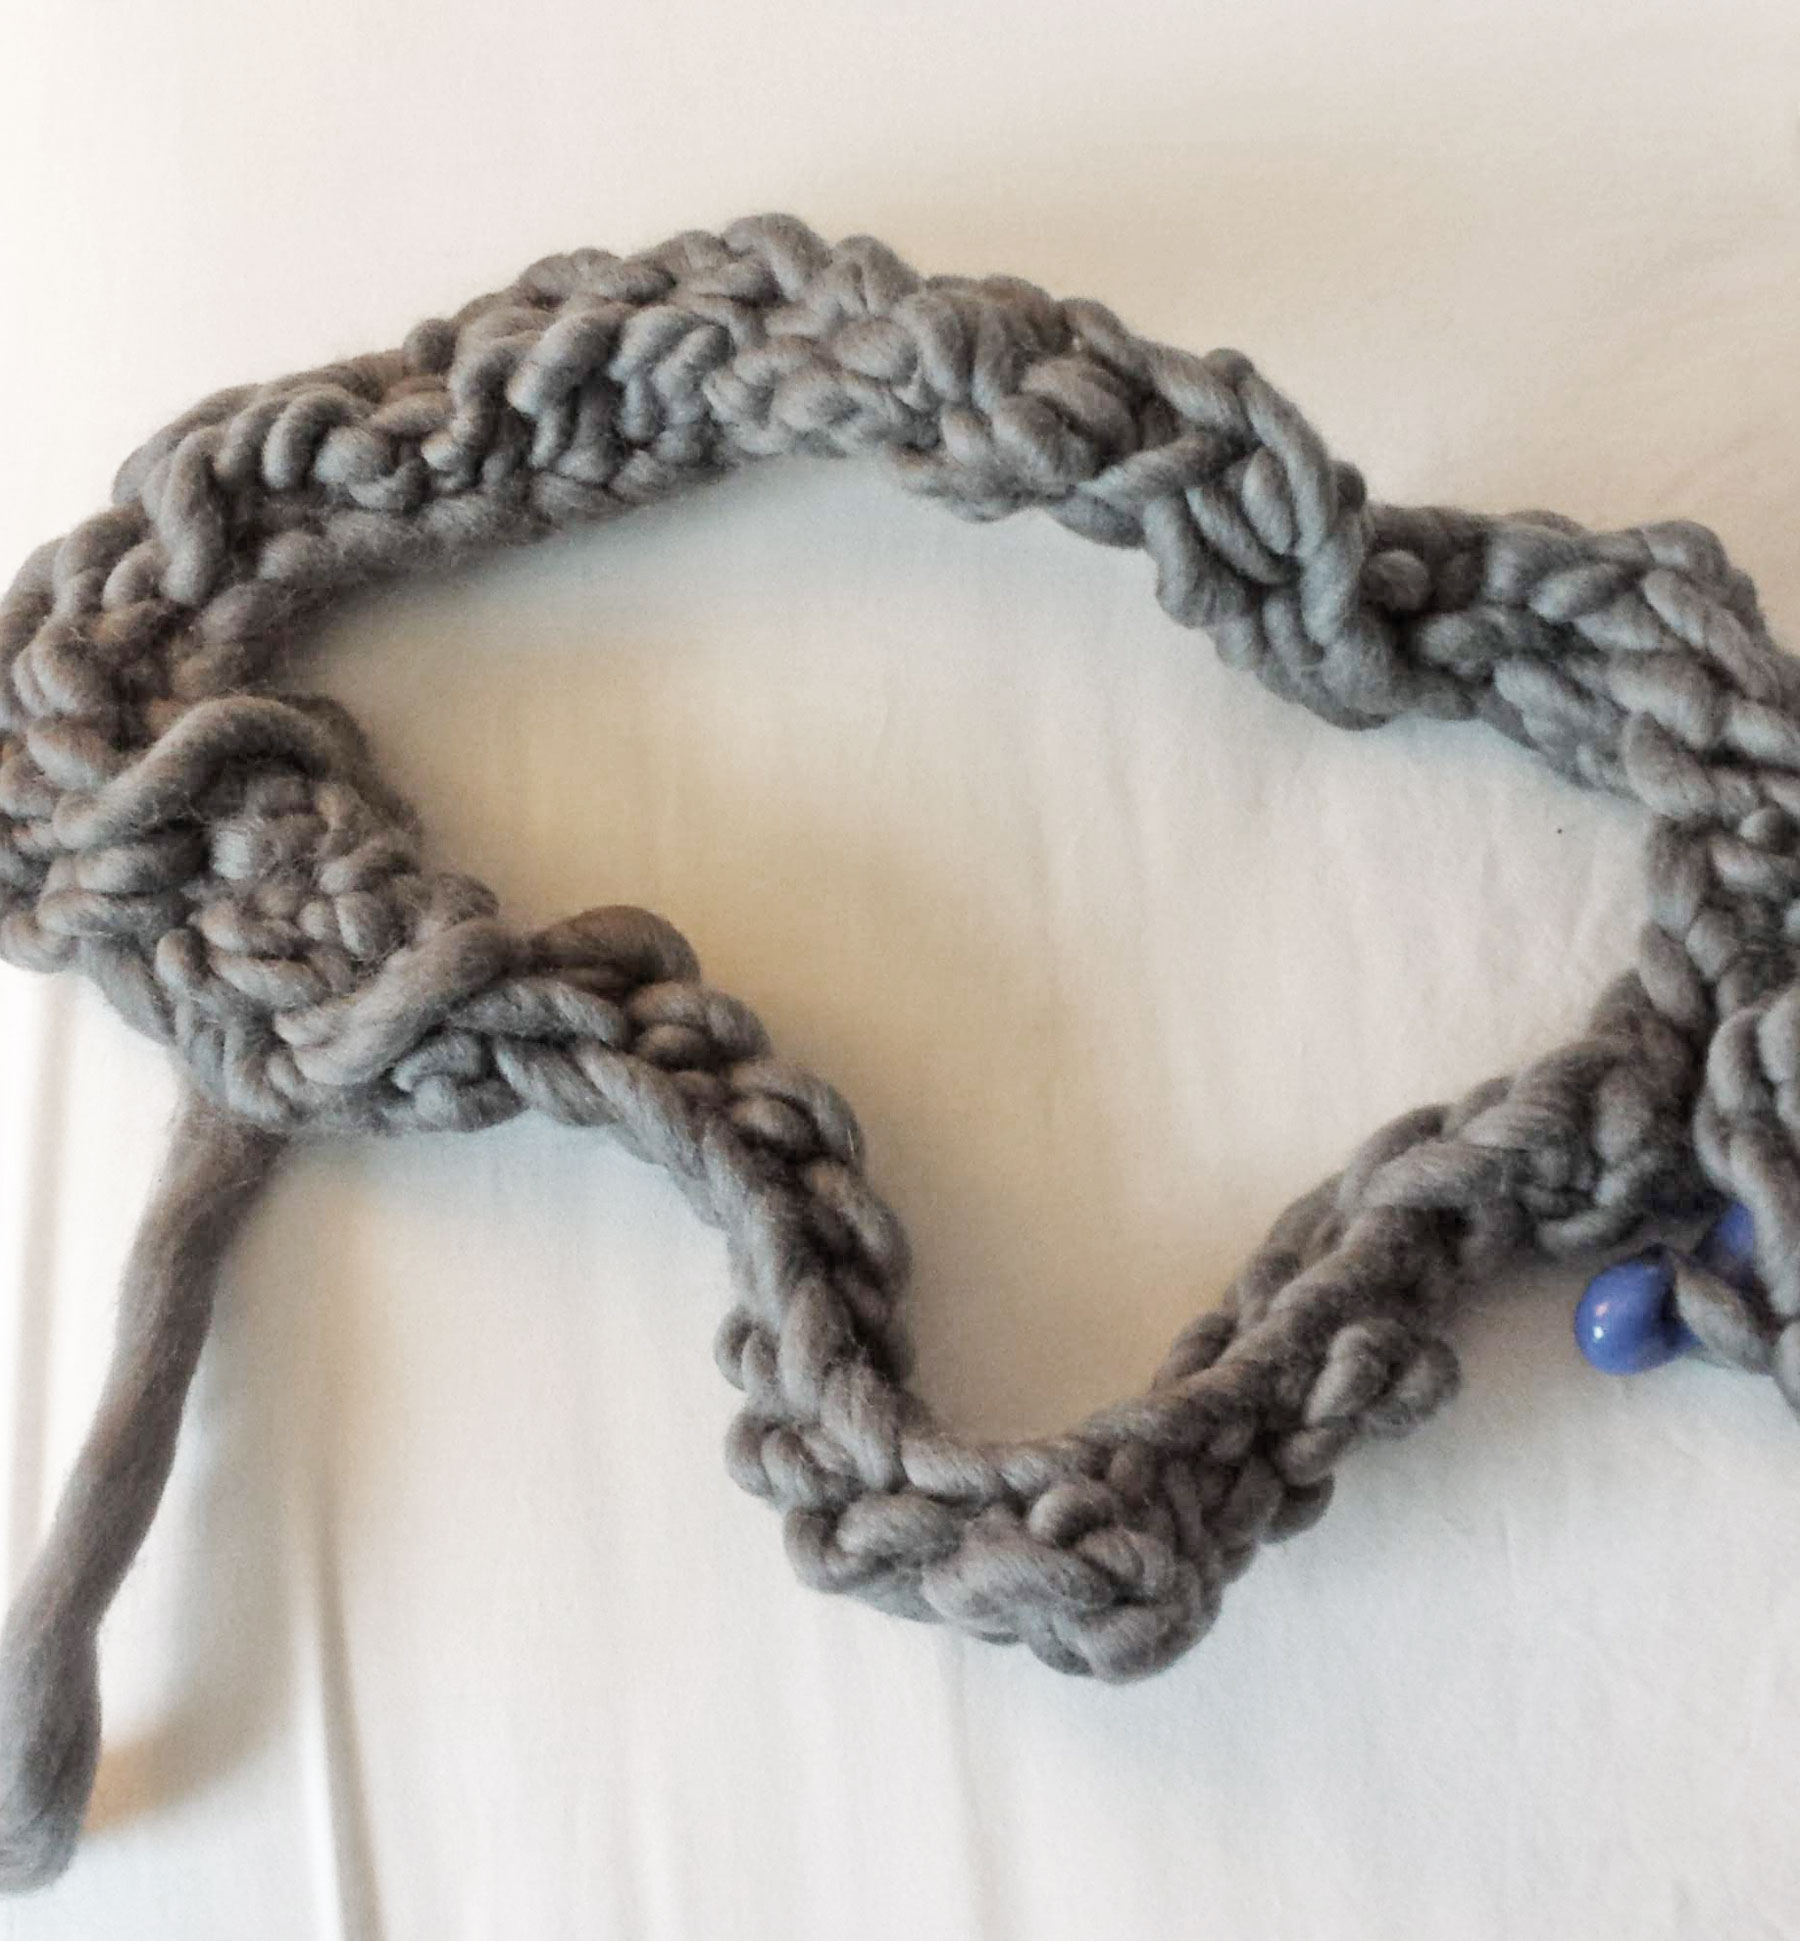 tightly woven and knotted gnarly attempt at crochet made with thick gray yarn